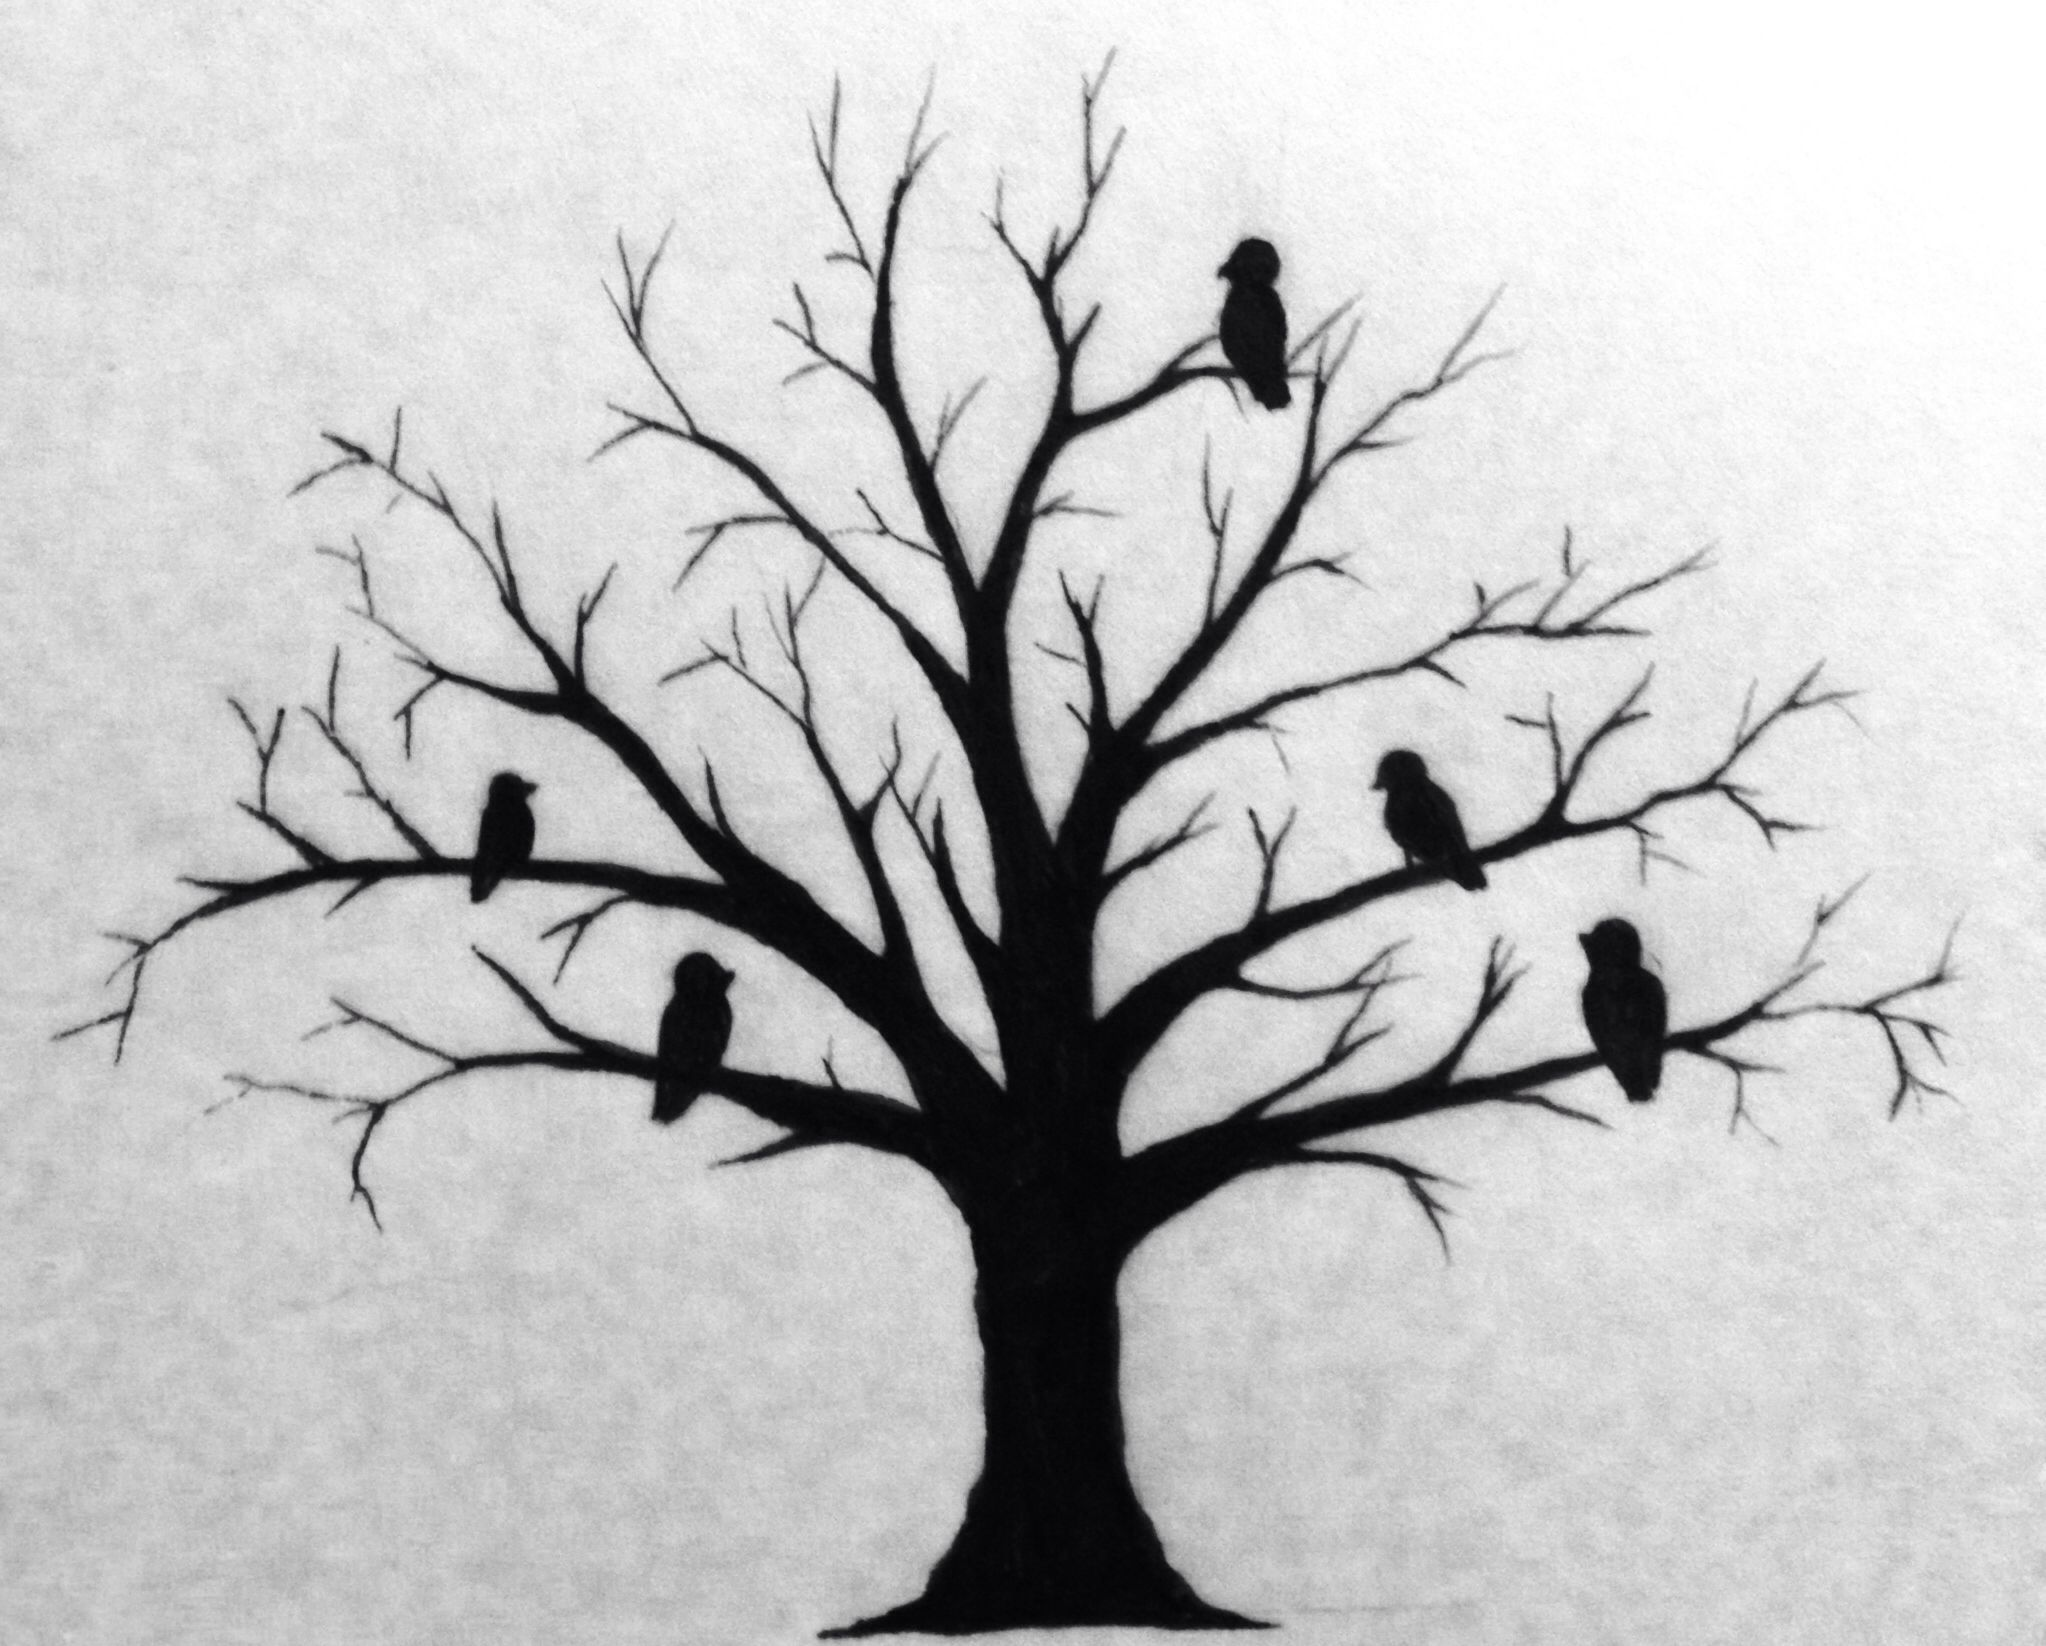 Family tree tattoo each bird is a family member the placement of each bird is a family member the placement of each bird symbolizes something my parents are divorced so the bottom birds are on different beaches biocorpaavc Images